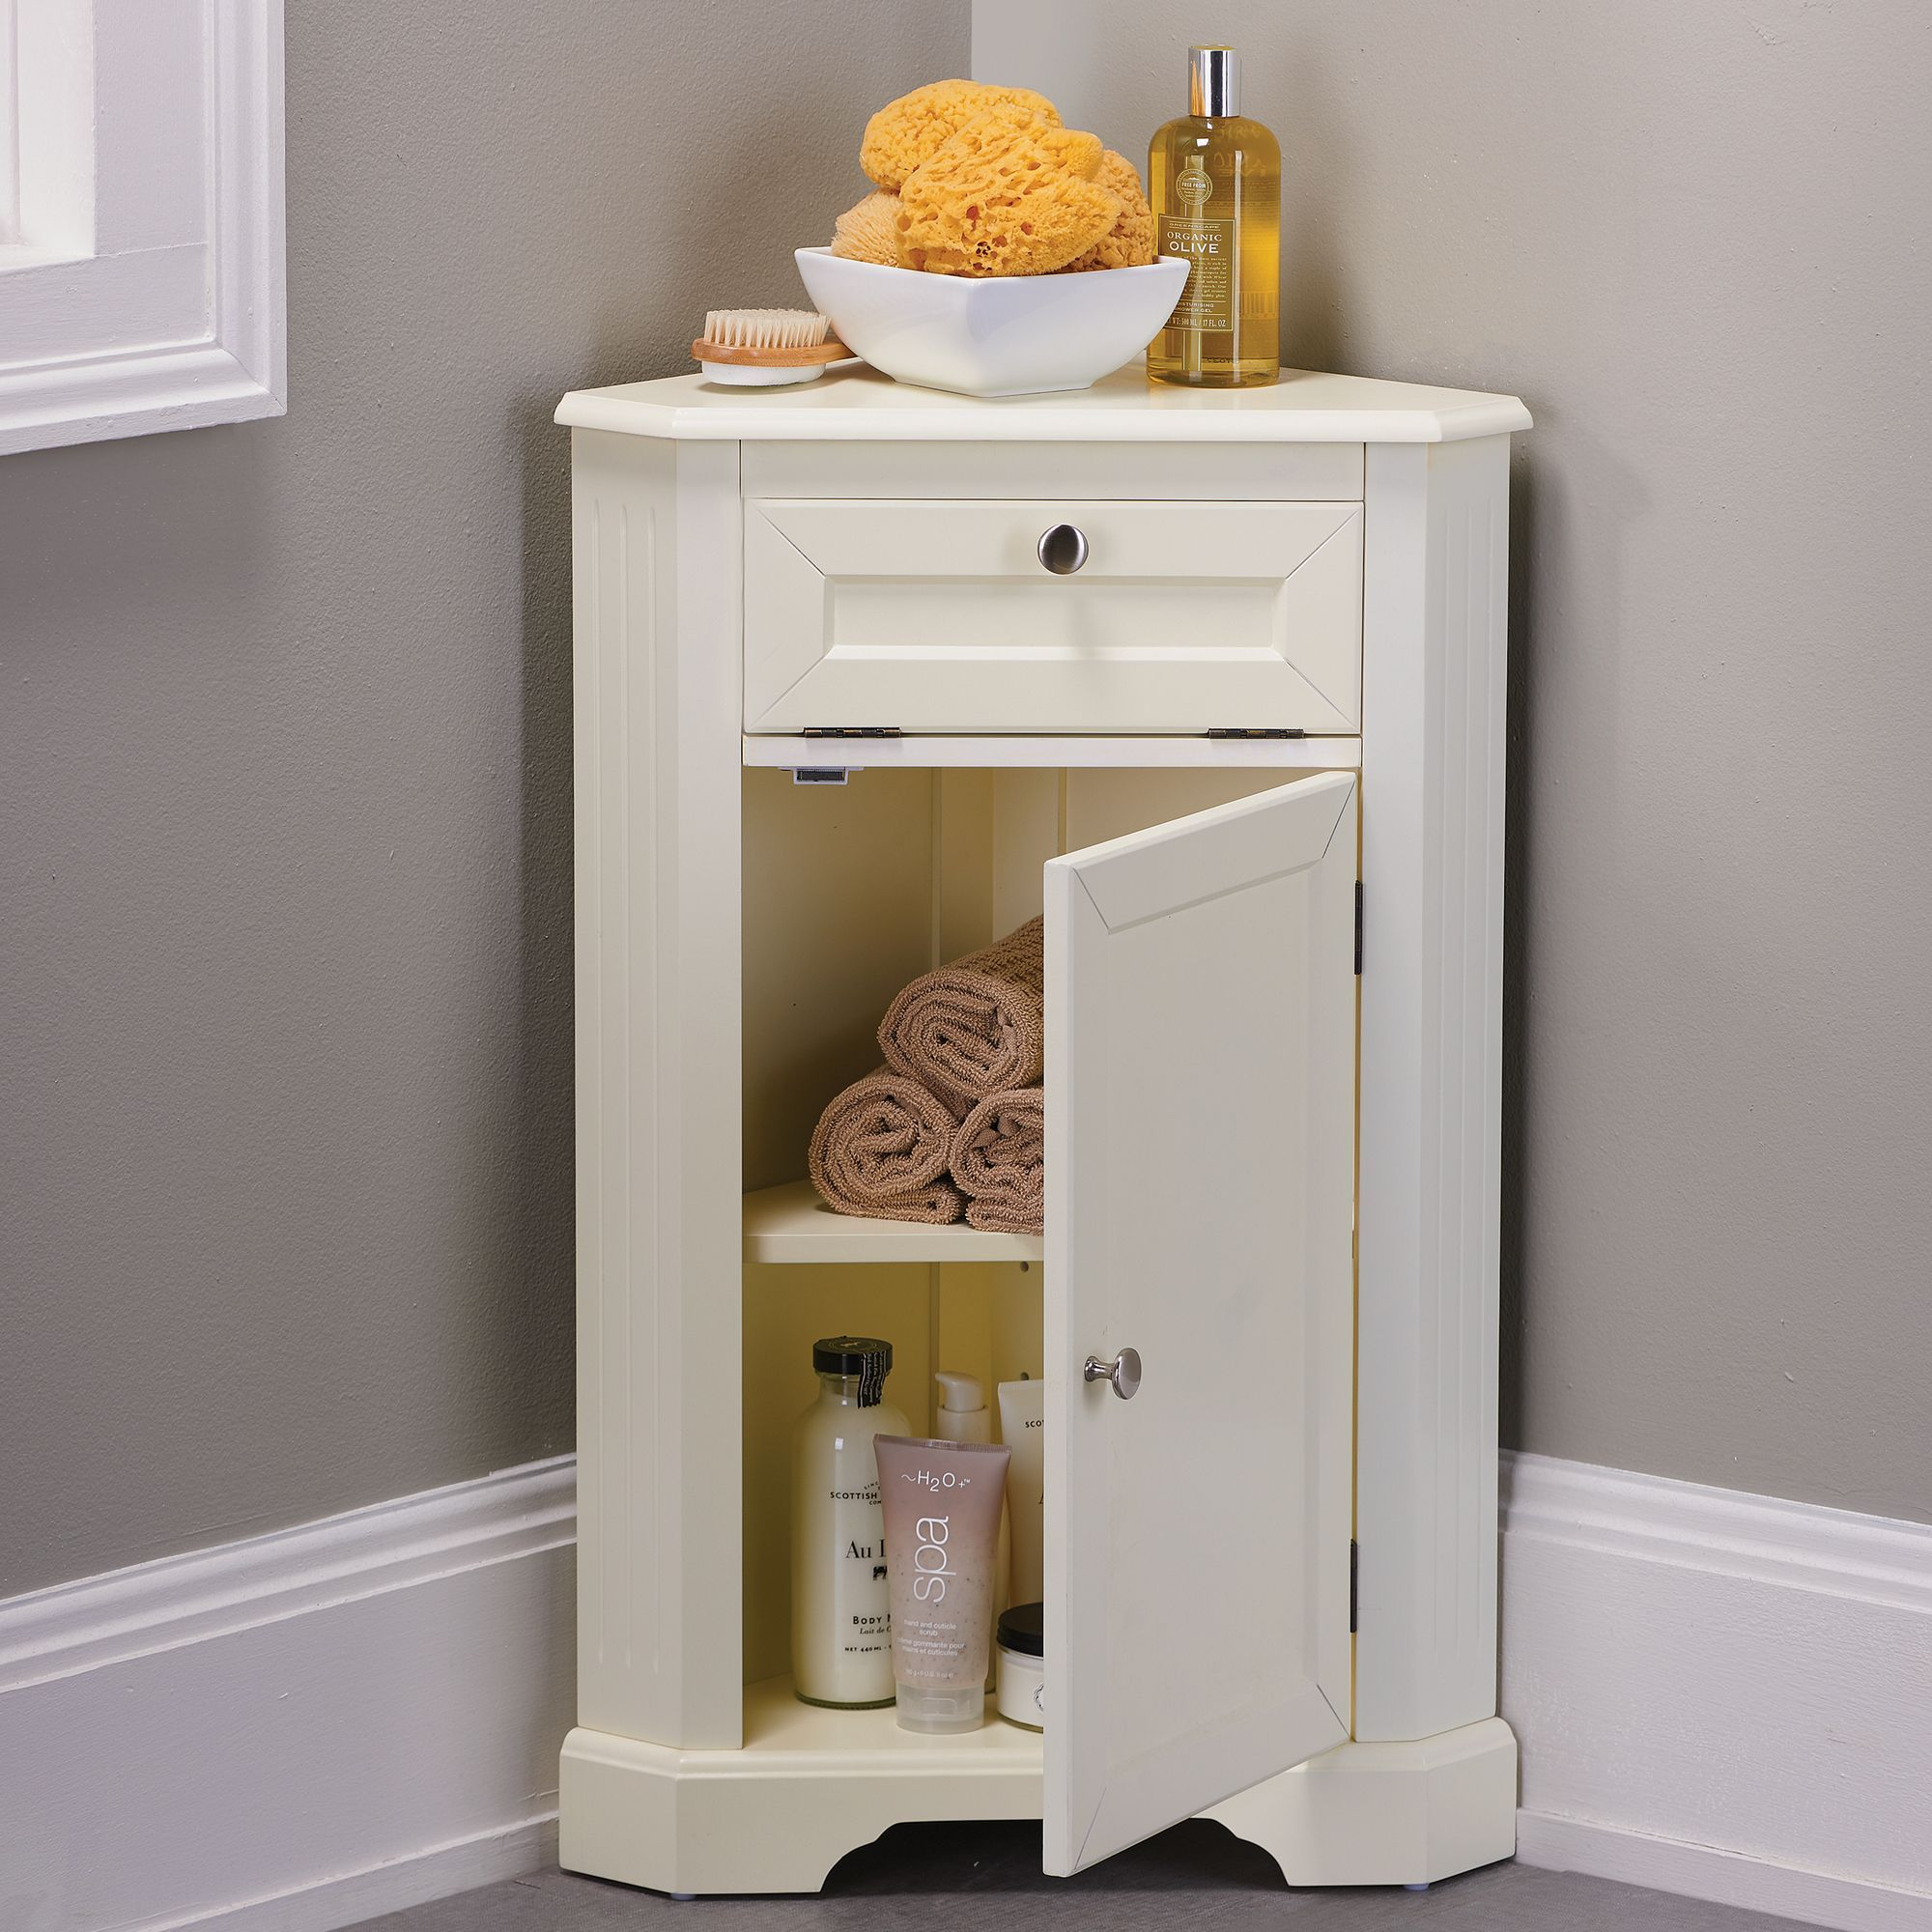 Maximize Storage Space In Small Bathrooms With Our Weatherby